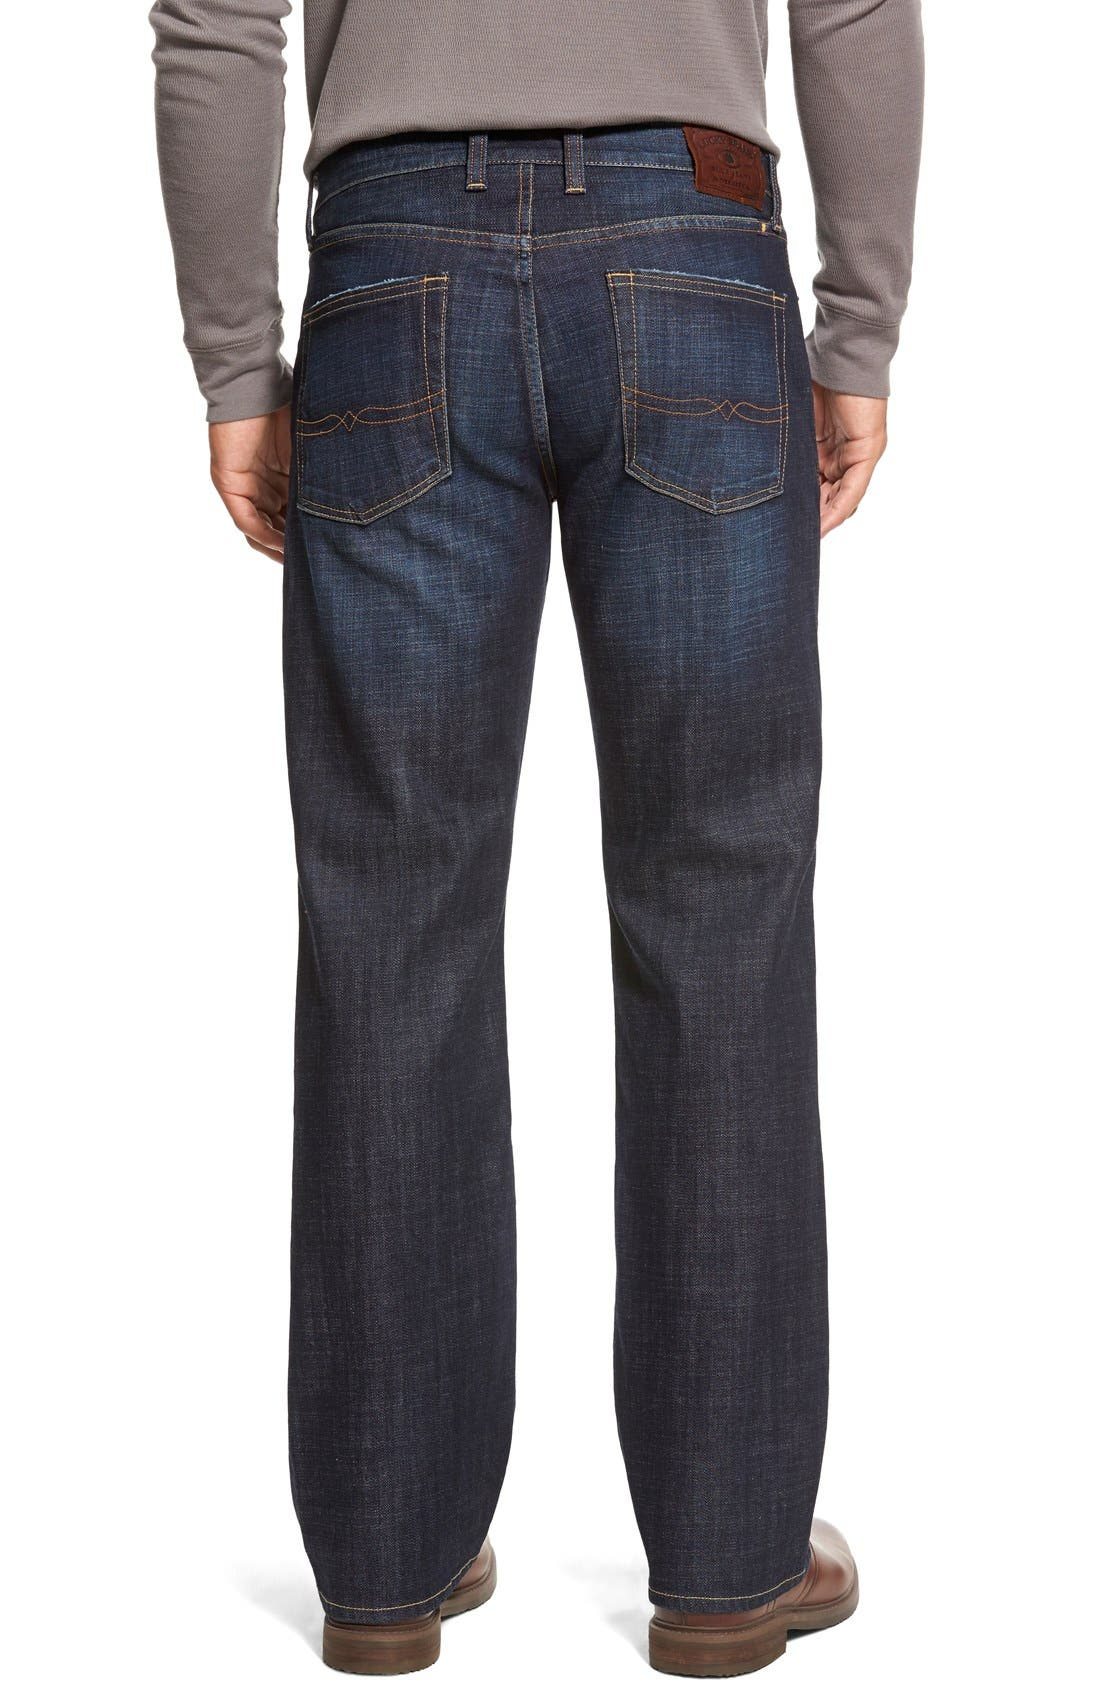 '361 Vintage' Straight Leg Jeans,                             Alternate thumbnail 2, color,                             410